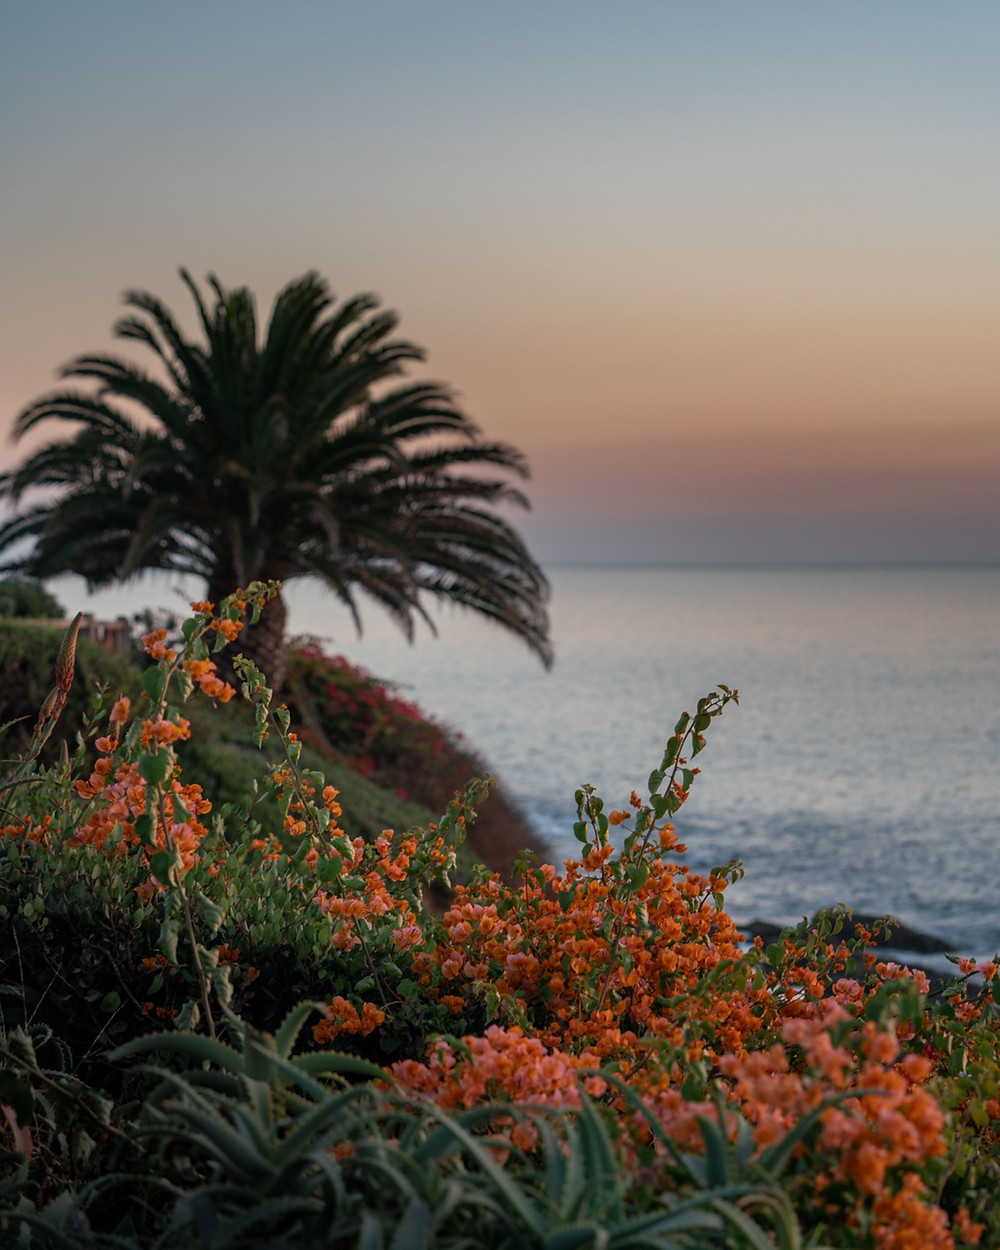 Stunning and colorful landscape with bright orange flowers and palm trees over looking the laguna beach